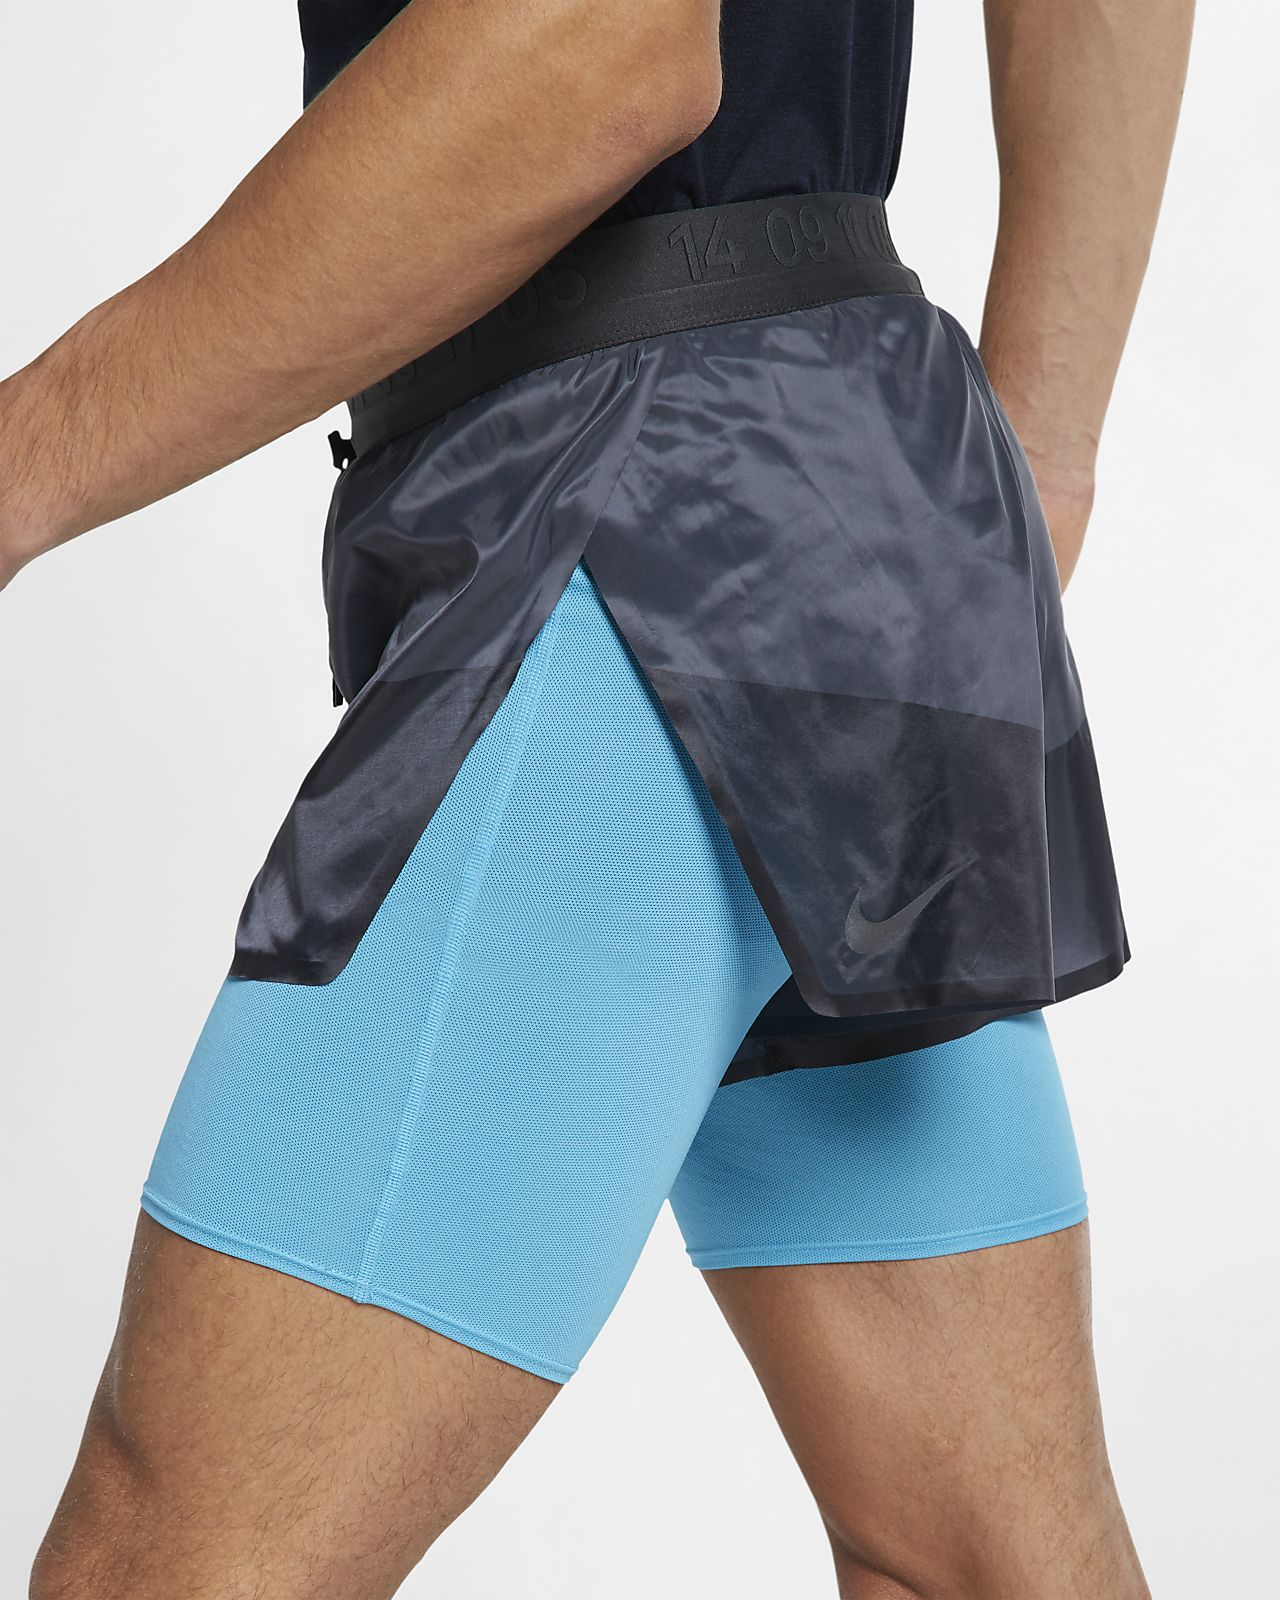 Nike Men's 2 Tech 2in1 Short